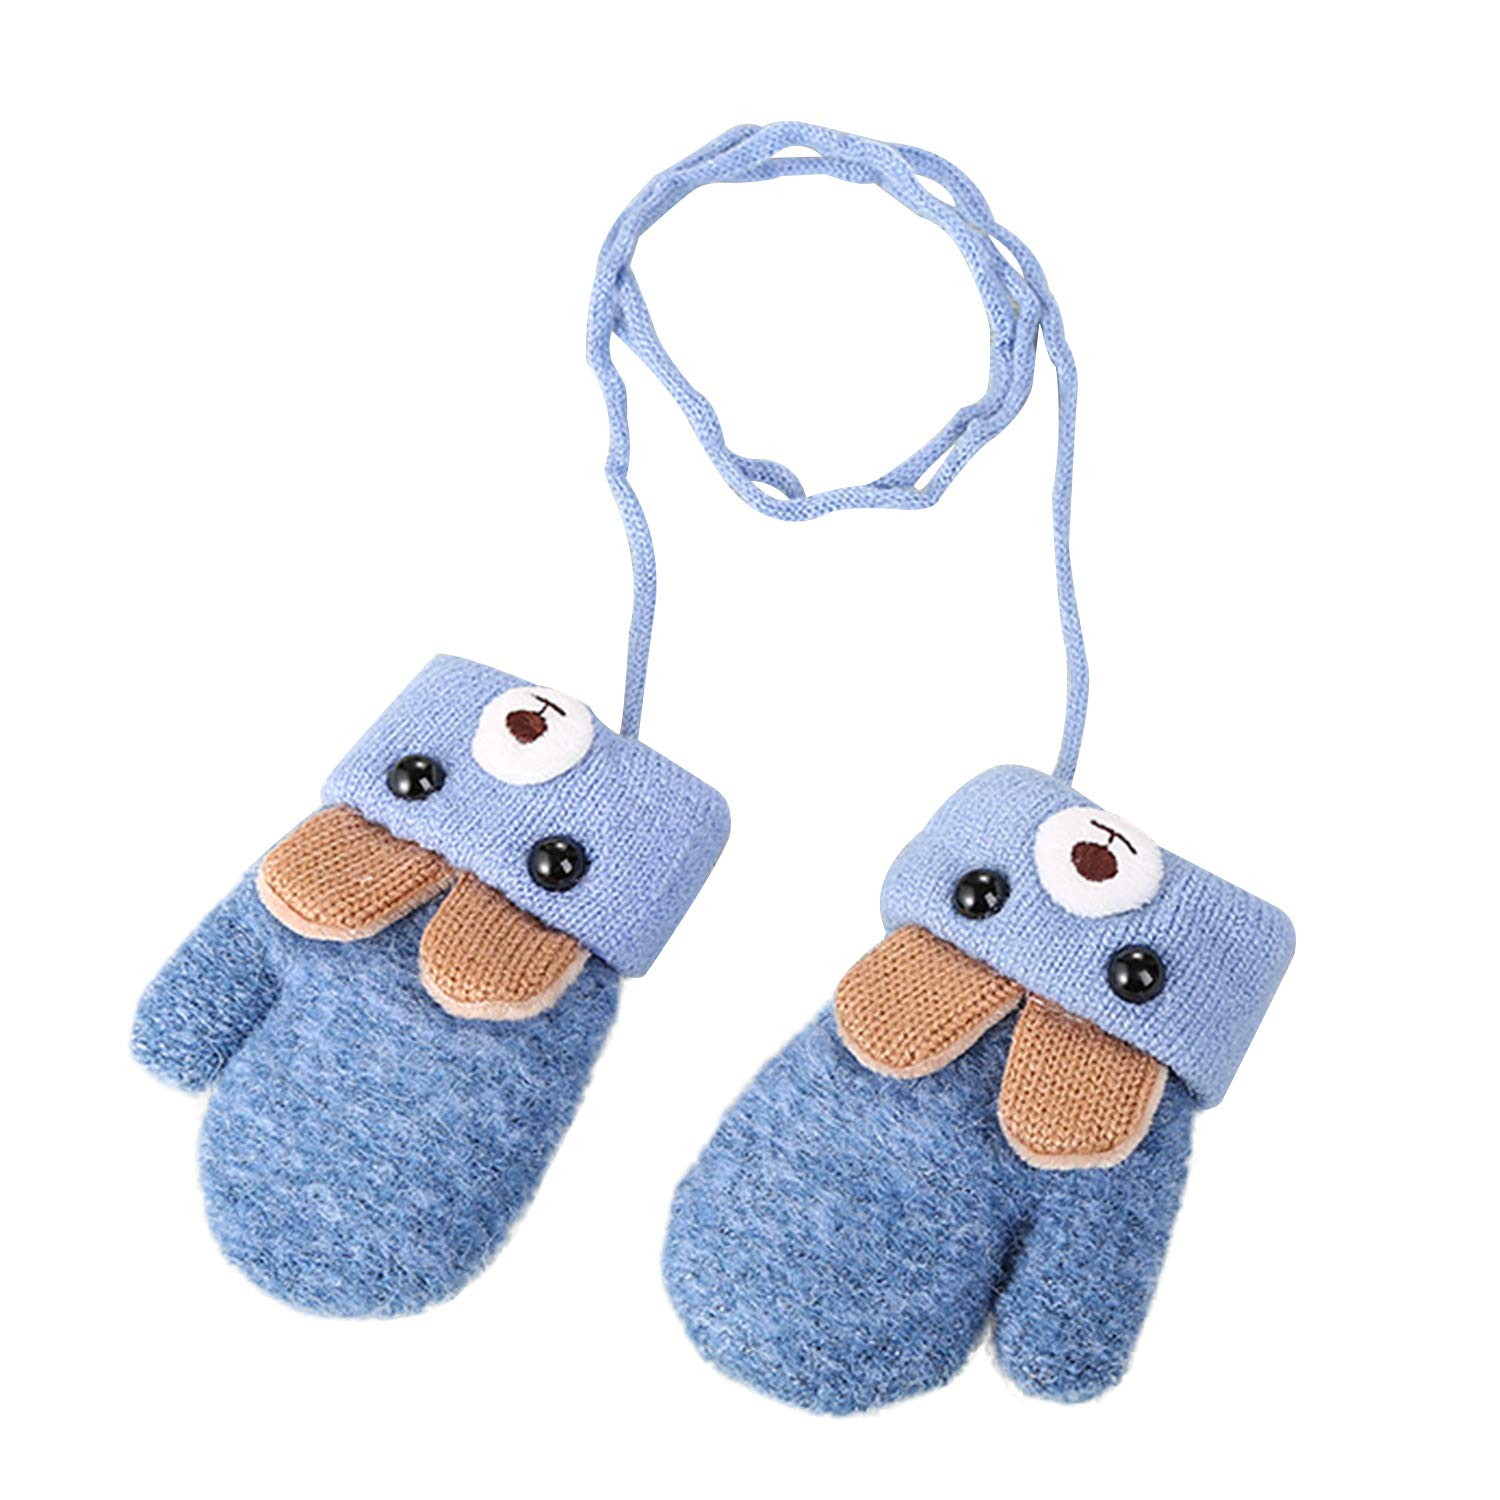 Kids Toddlers Hang Neck Gloves Cute Cartoon Bear Knit Gloves Newborn Unisex Baby Warm Mittens Thicken Cashmere Winter Hot with Rope Mitten Thermal Full Finger Wrist Glove Boy Girls Aged 0-3 Xmas Gift